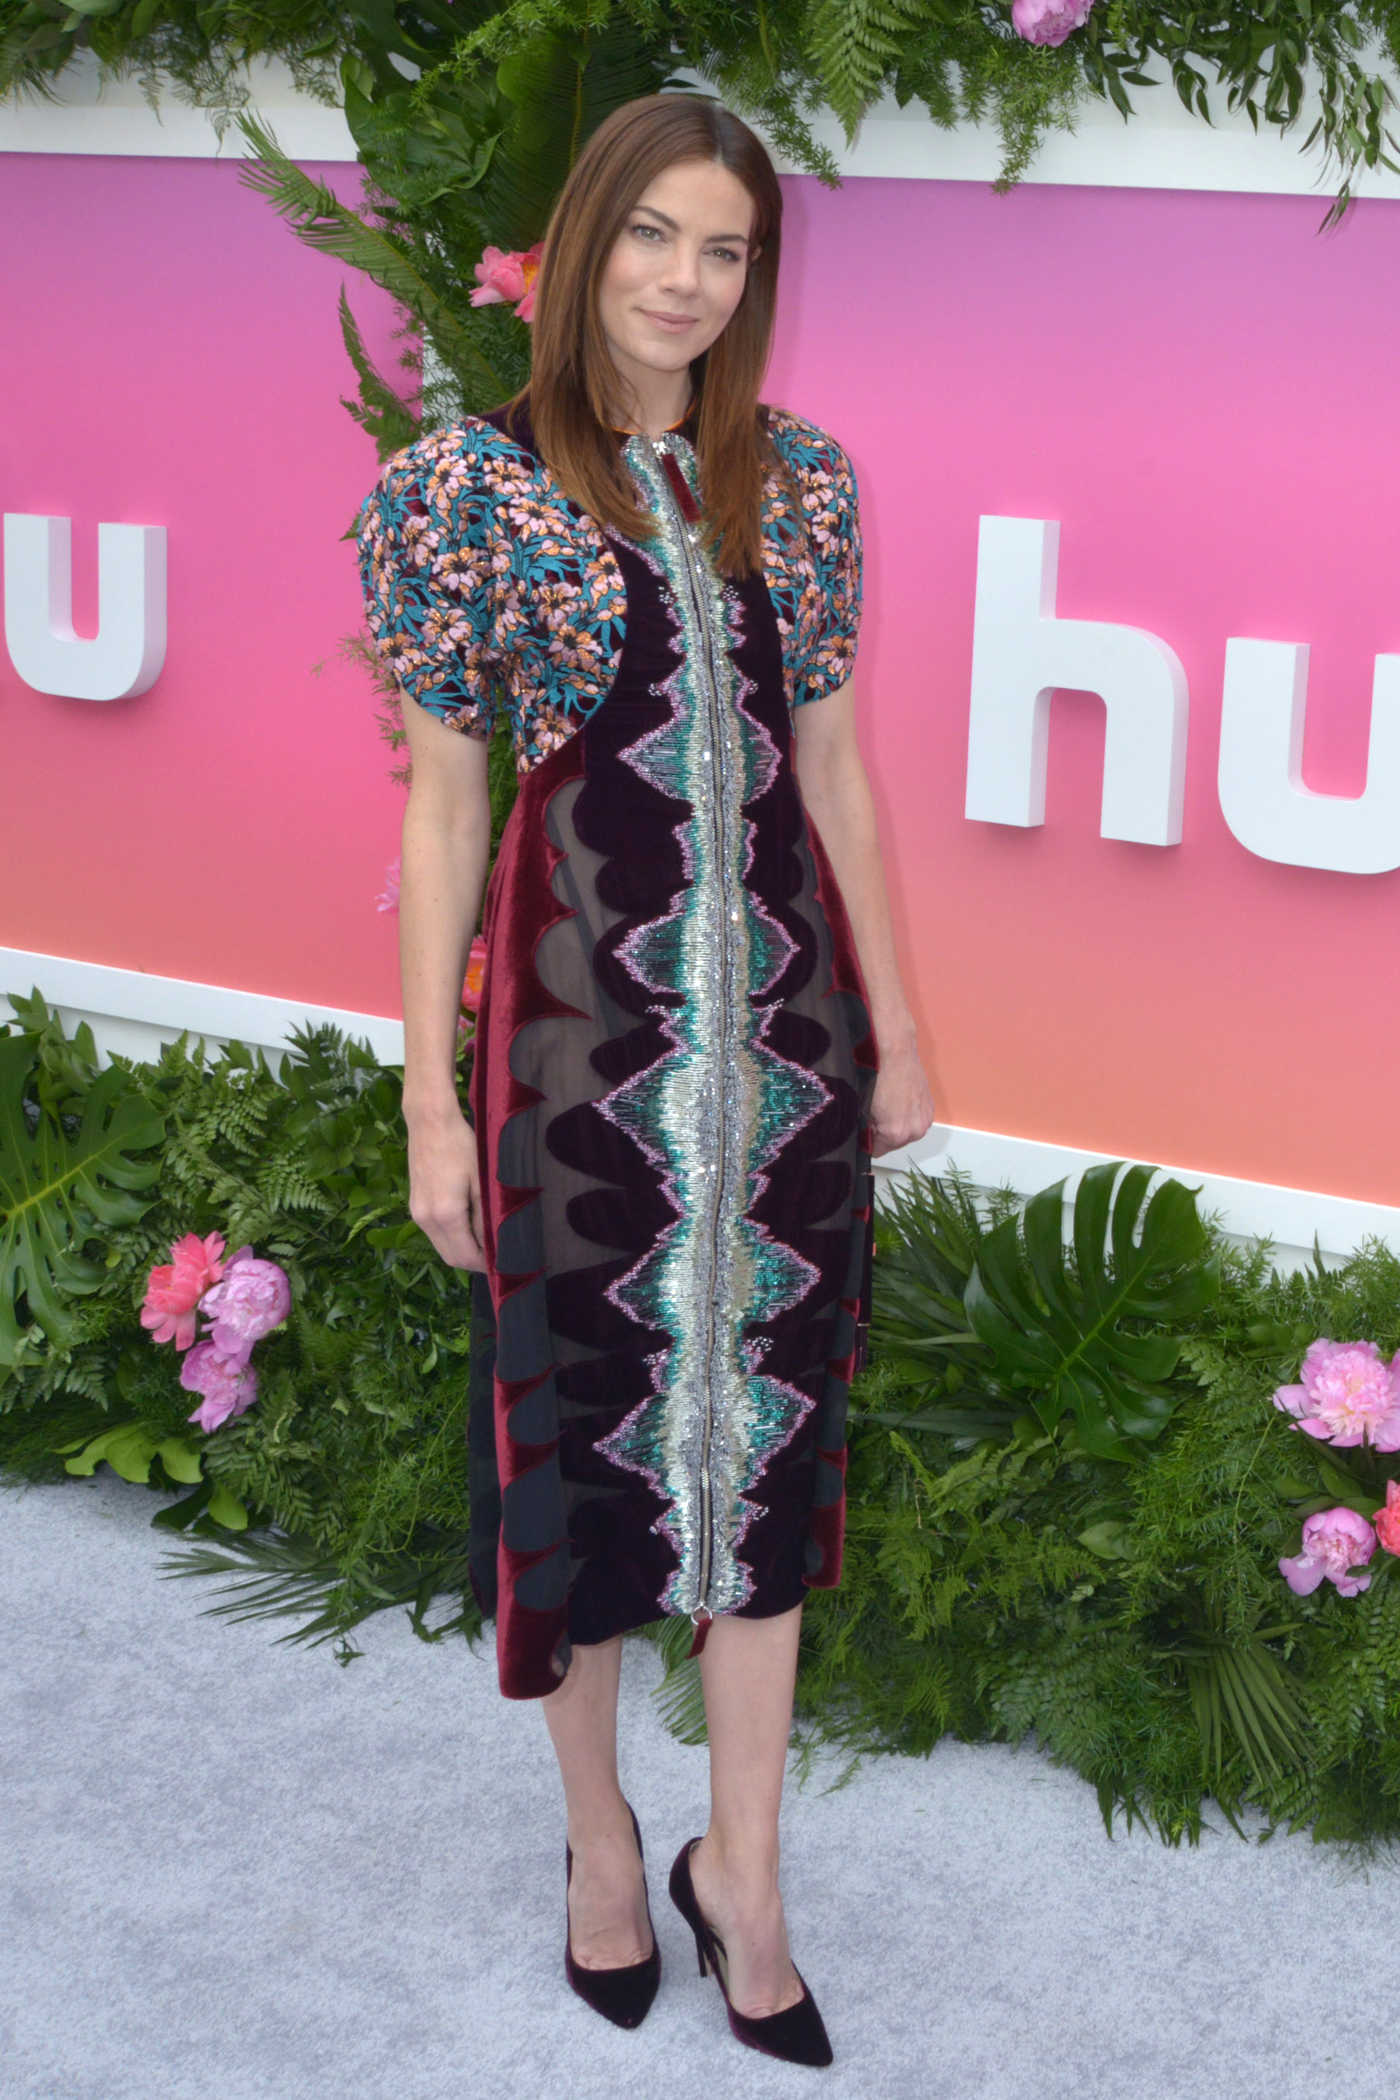 Michelle Monaghan Attends the Hulu Upfront in NYC 05/03/2017